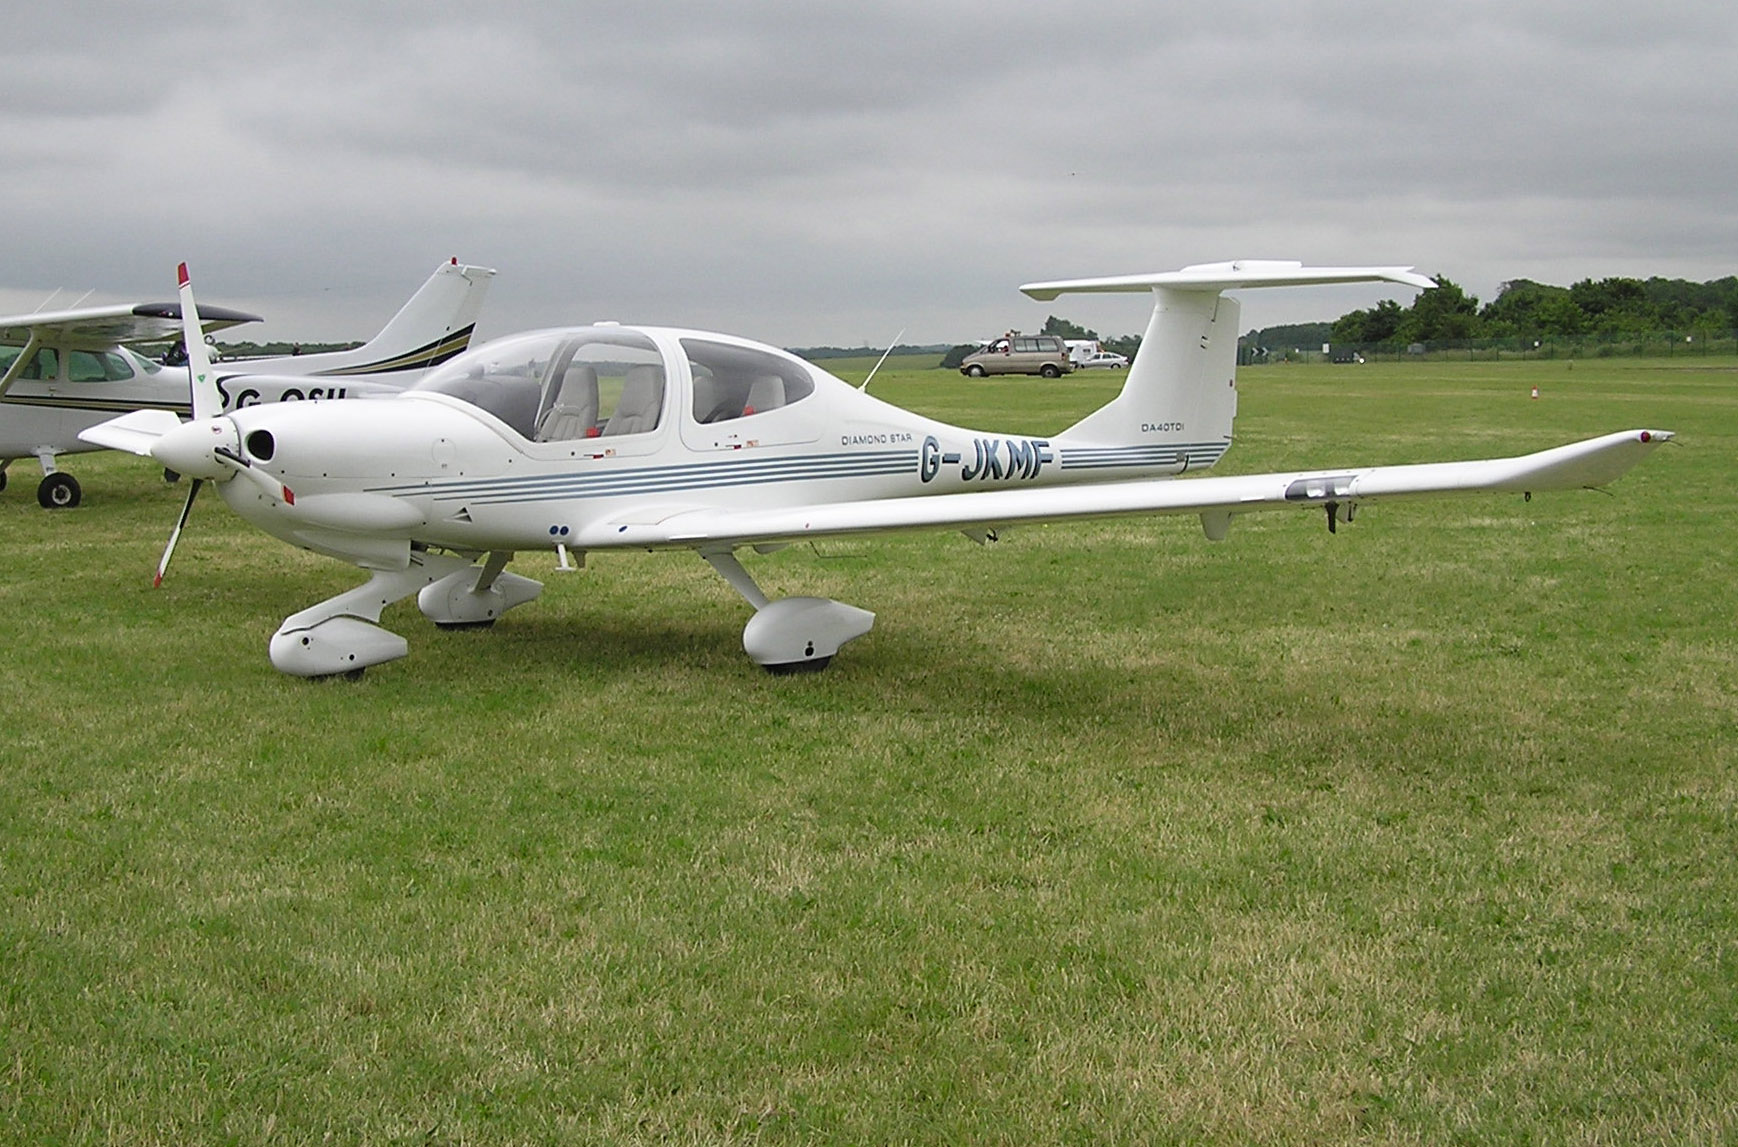 File:Diamond.da40-tdi.diamondstar.g-jkmf.arp.jpg